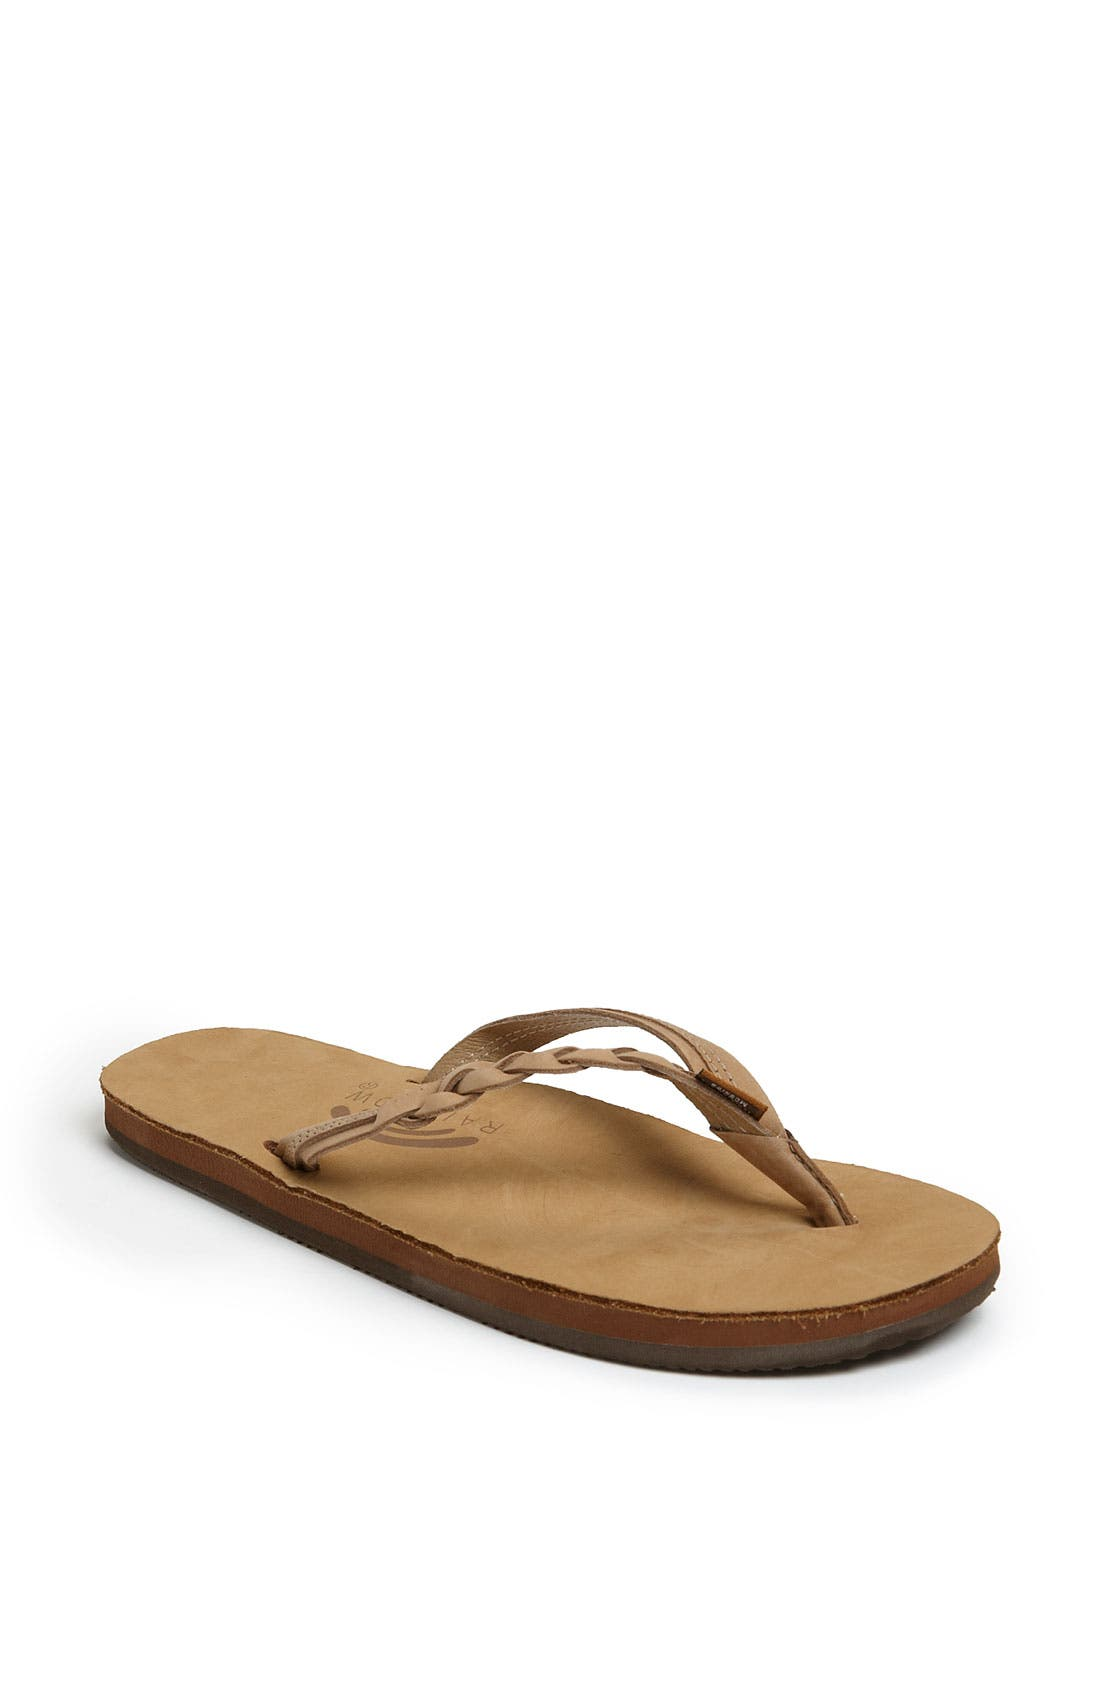 Rainbow 'Flirty' Braided Leather Flip Flop,                         Main,                         color, SIERRA BROWN